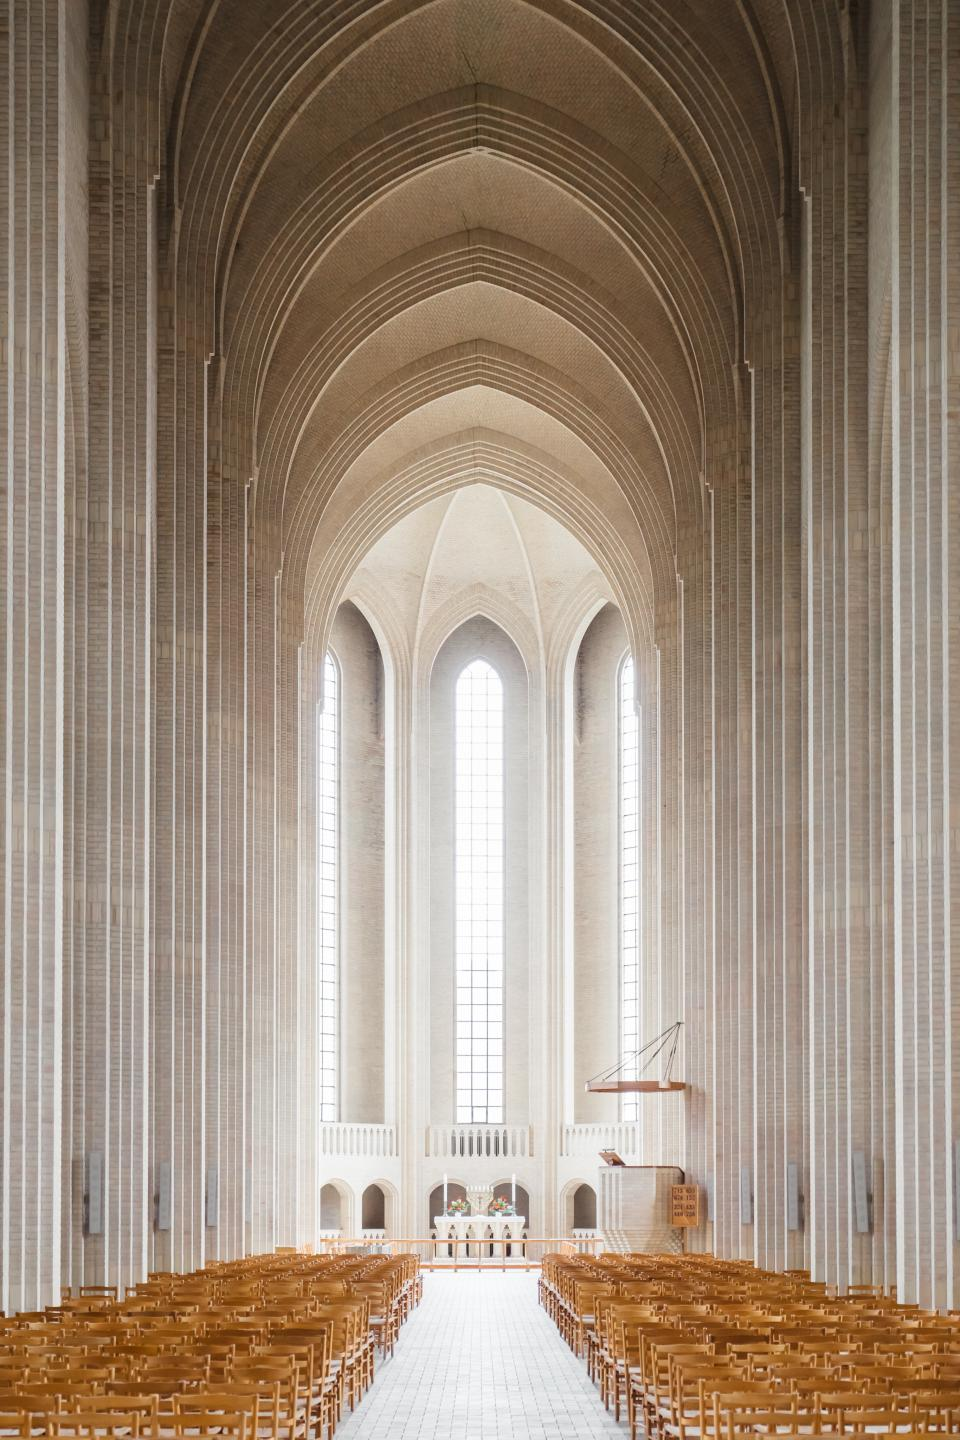 architecture building infrastructure church cathedral chairs altar mass